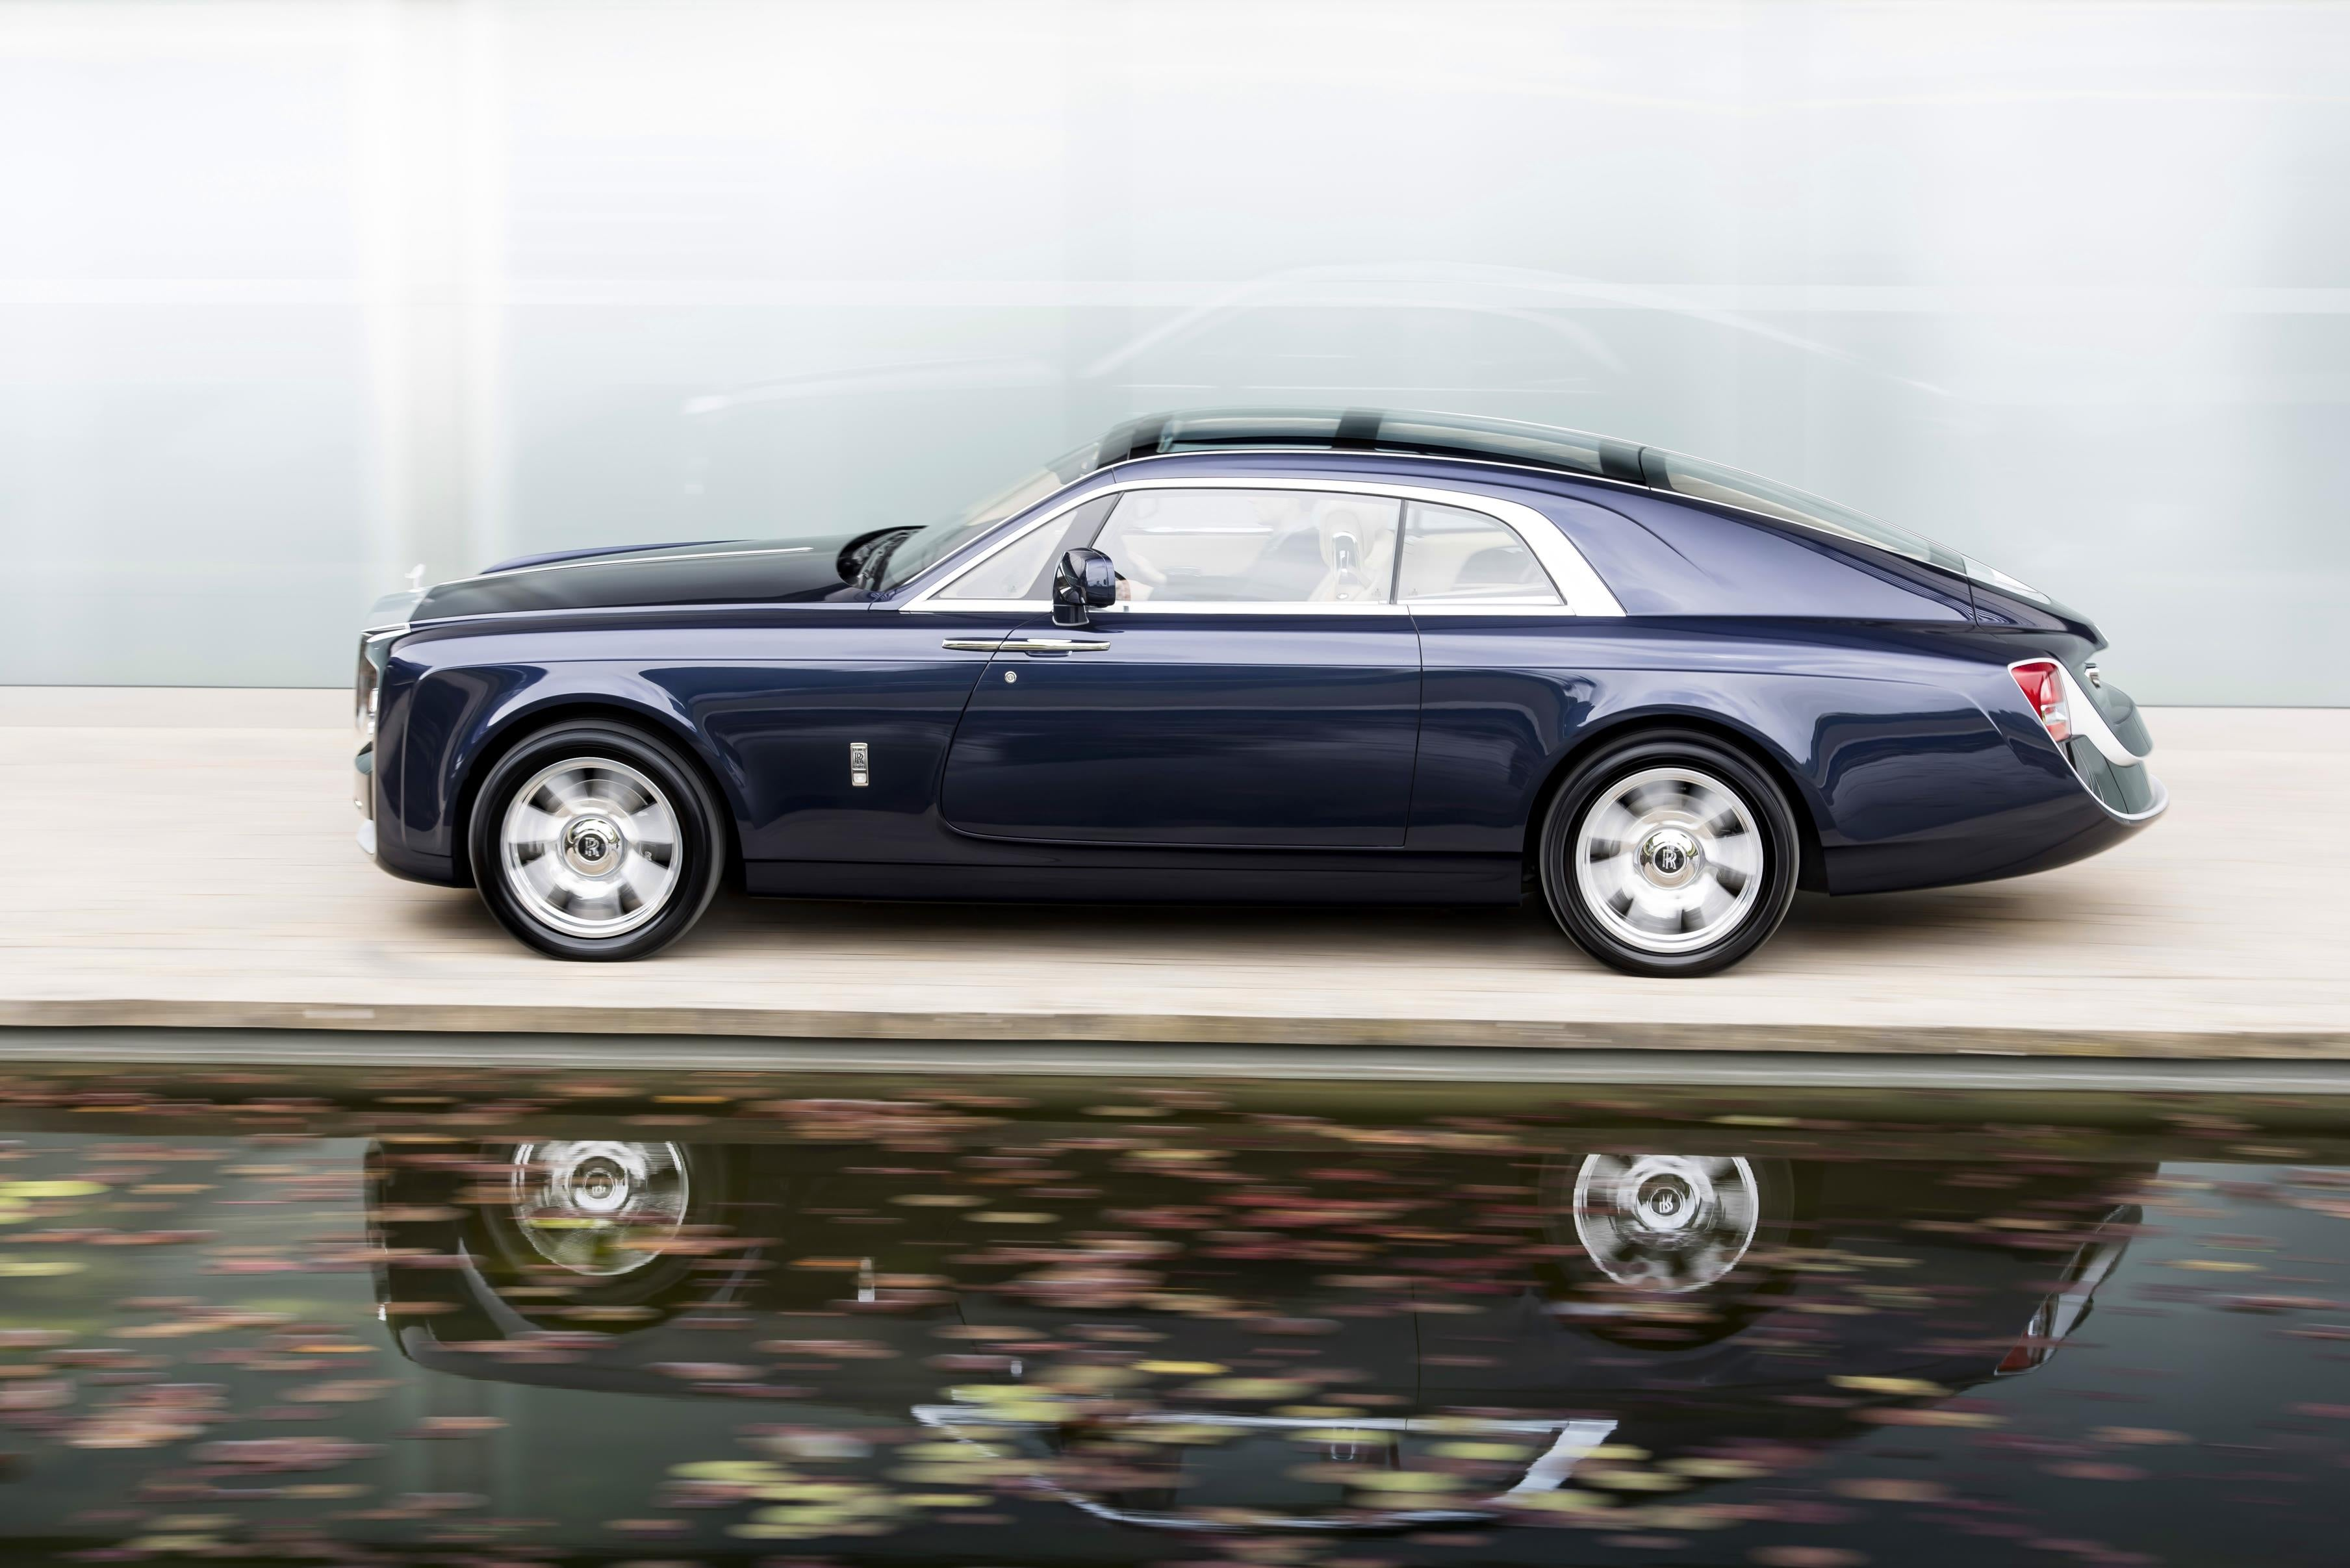 This Oddball Rolls Royce Could Be The Most Expensive New